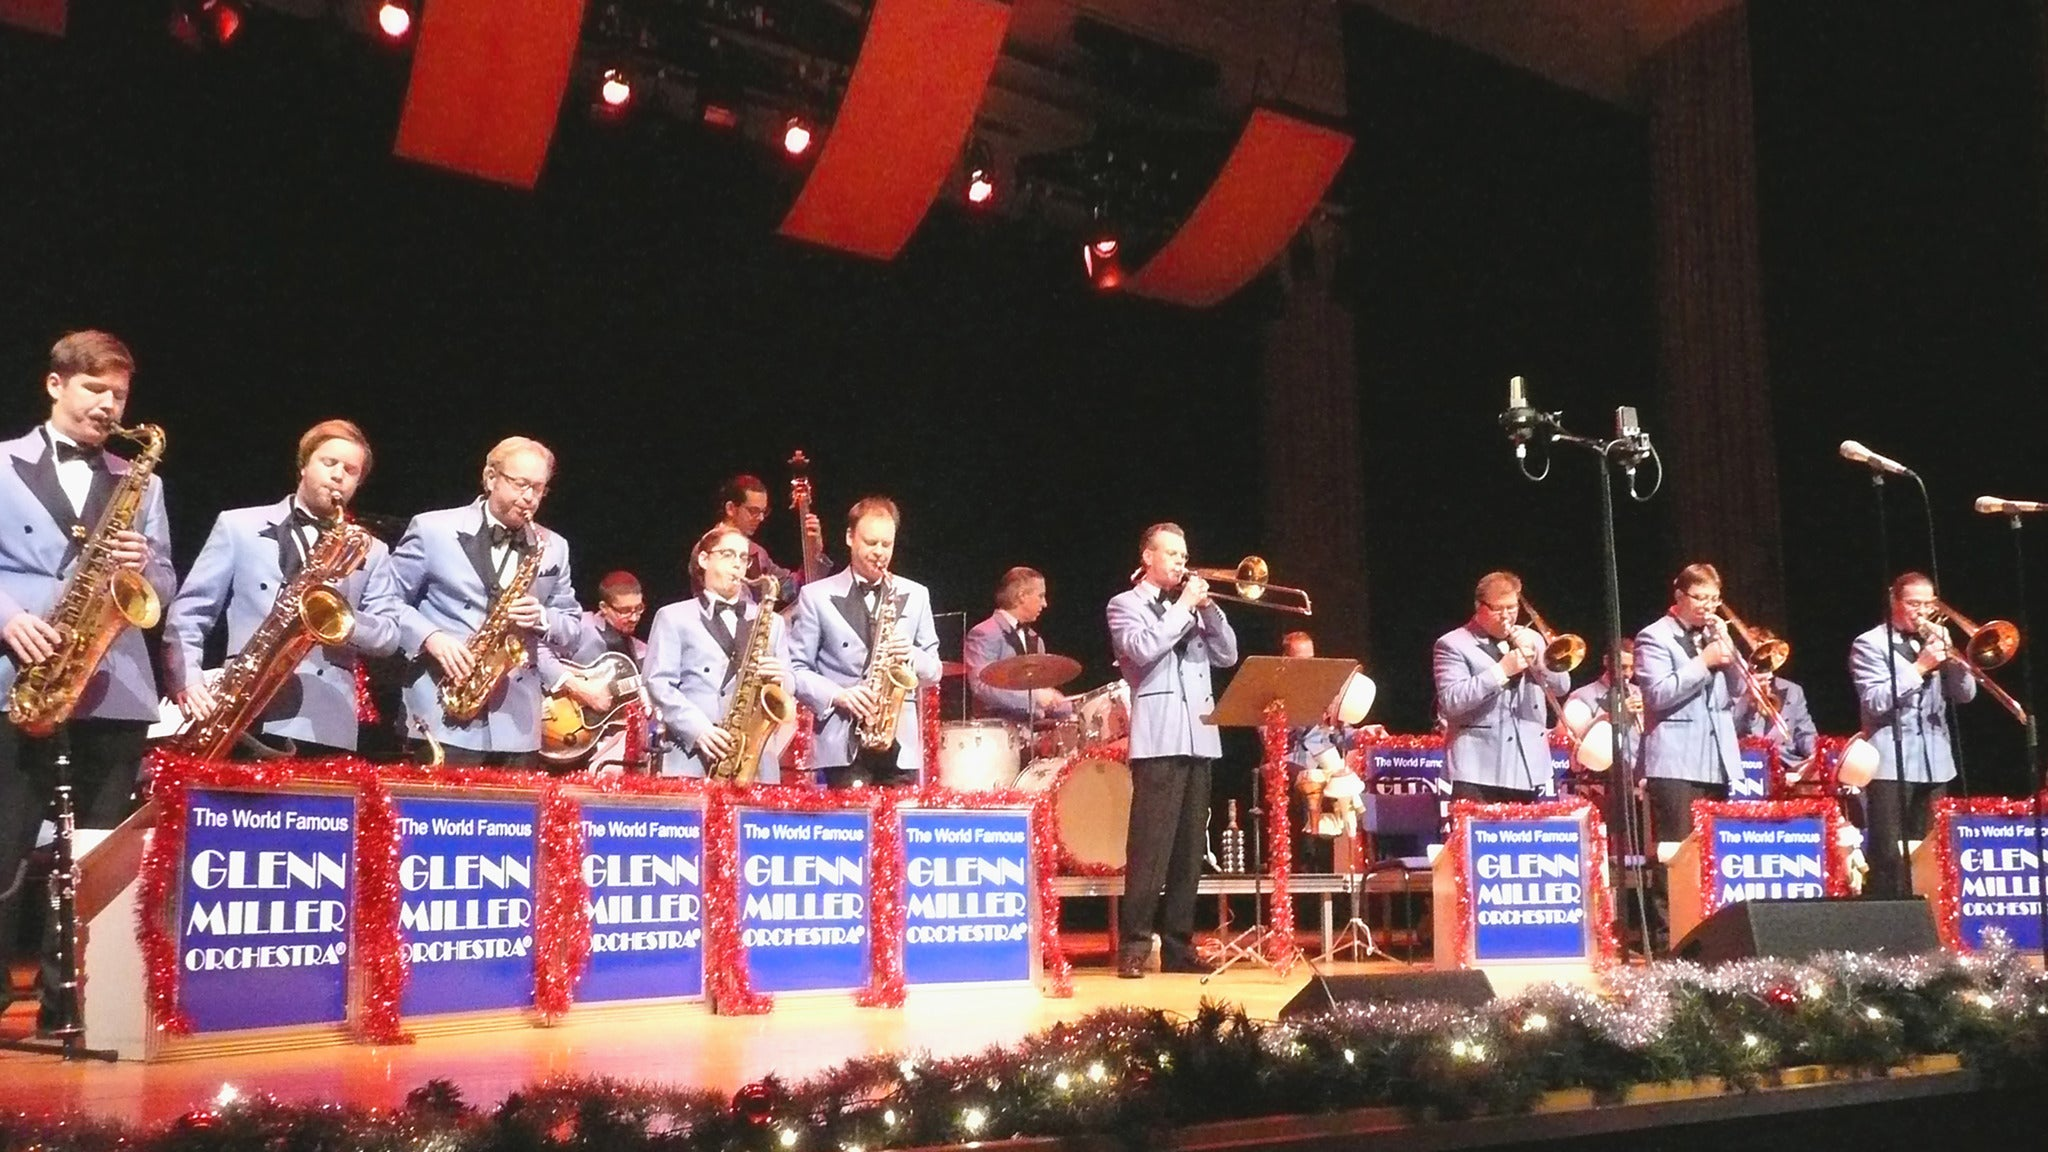 Glenn Miller Orchestra at Coach House